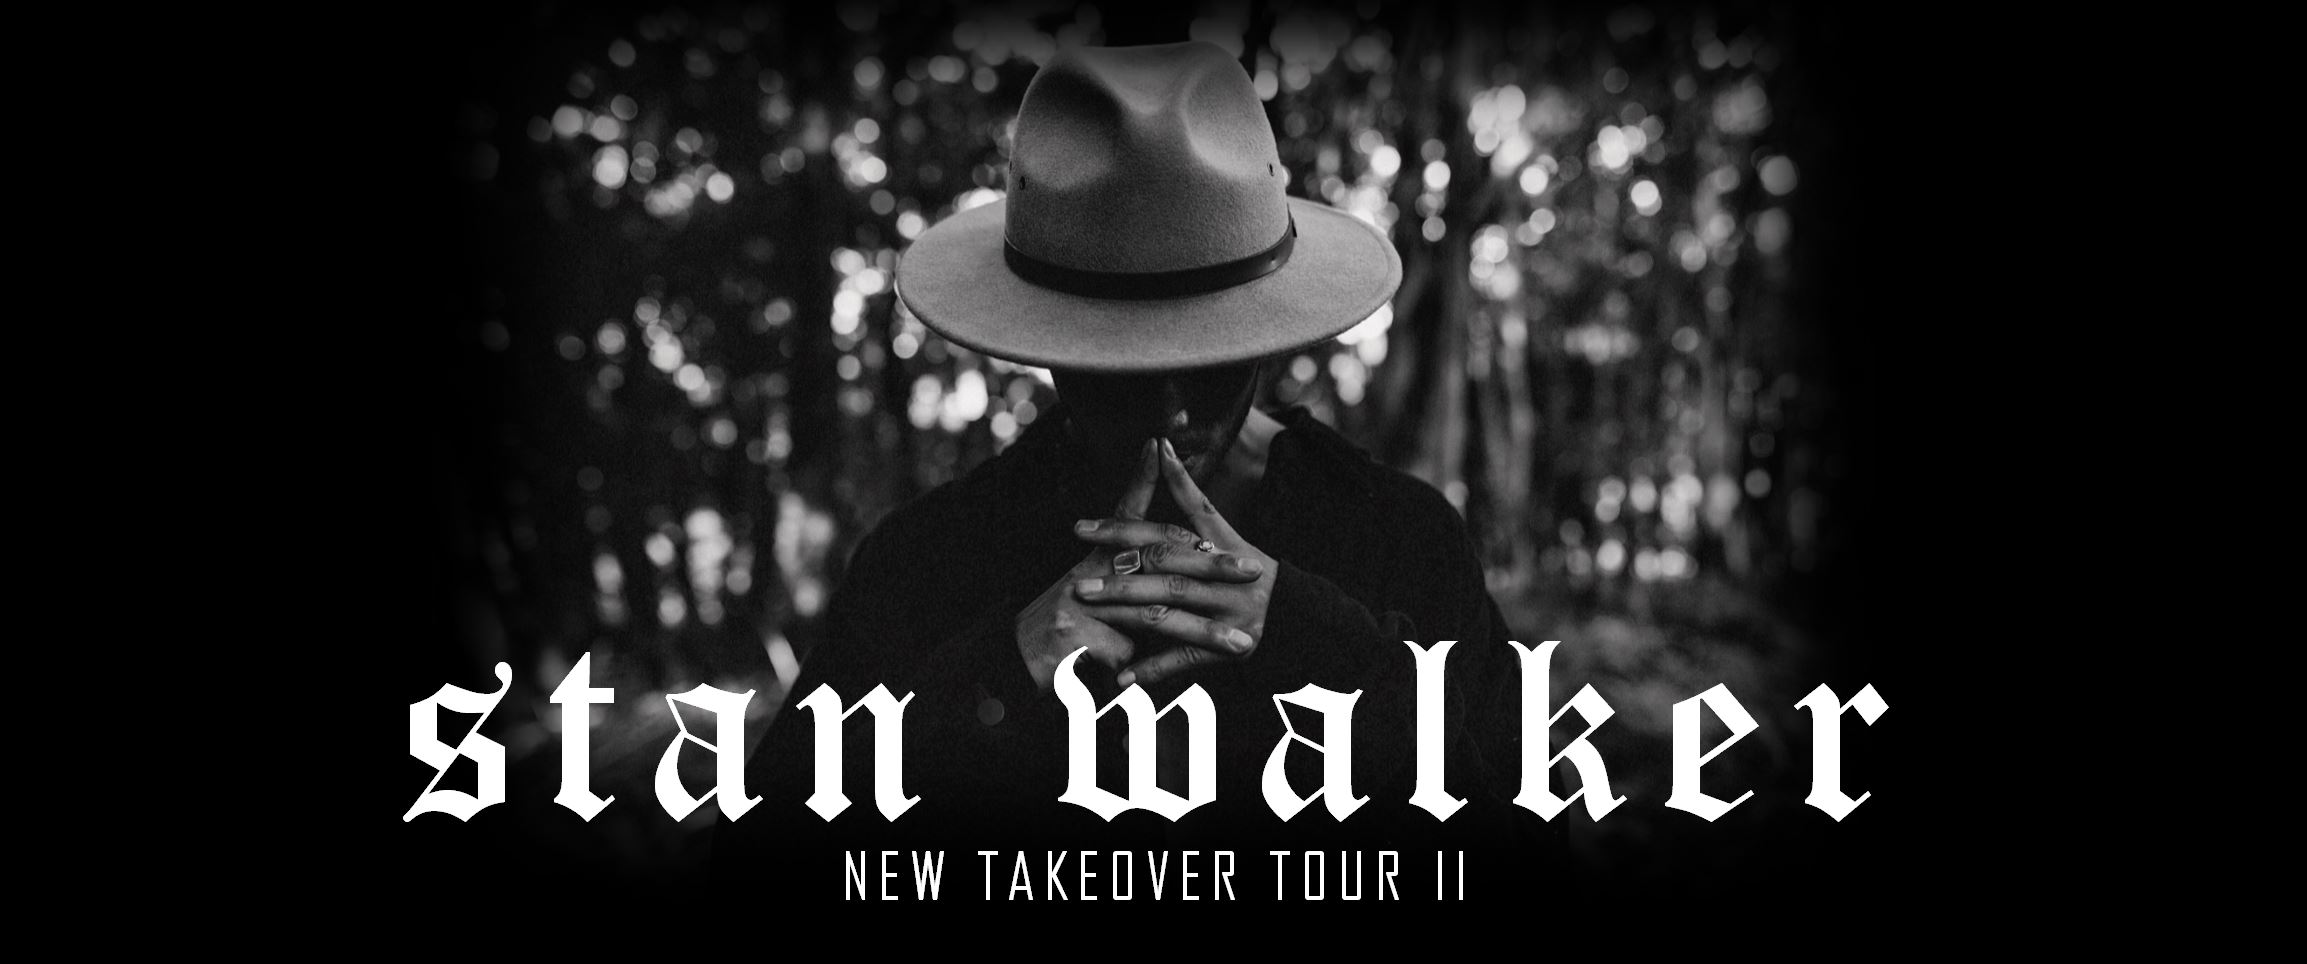 Tickets for STAN WALKER - New Takeover Tour II - Whangarei in One Tree Point from Ticketspace